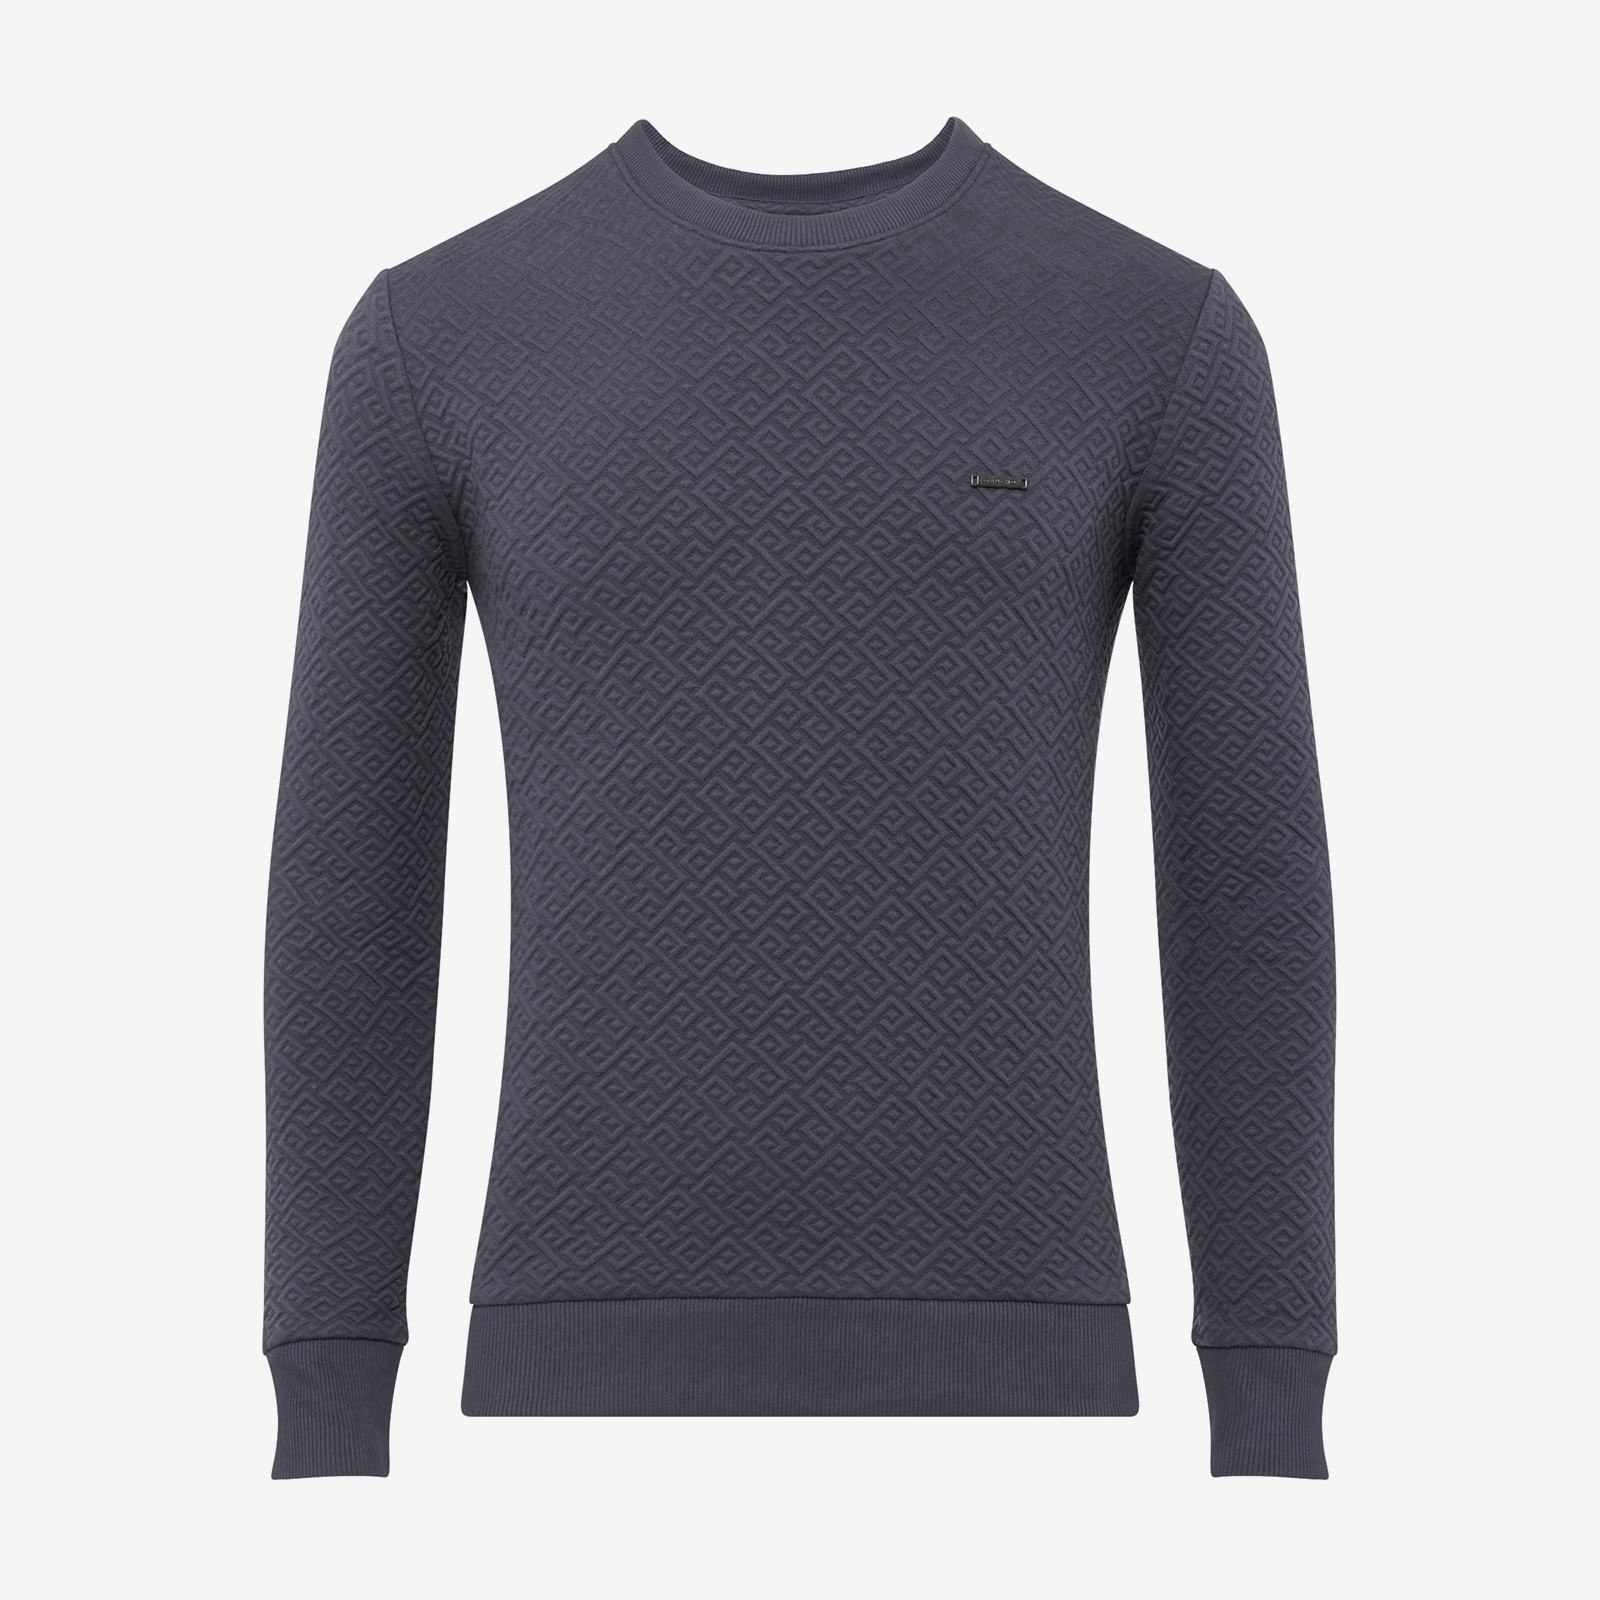 Thermo longsleeve product image